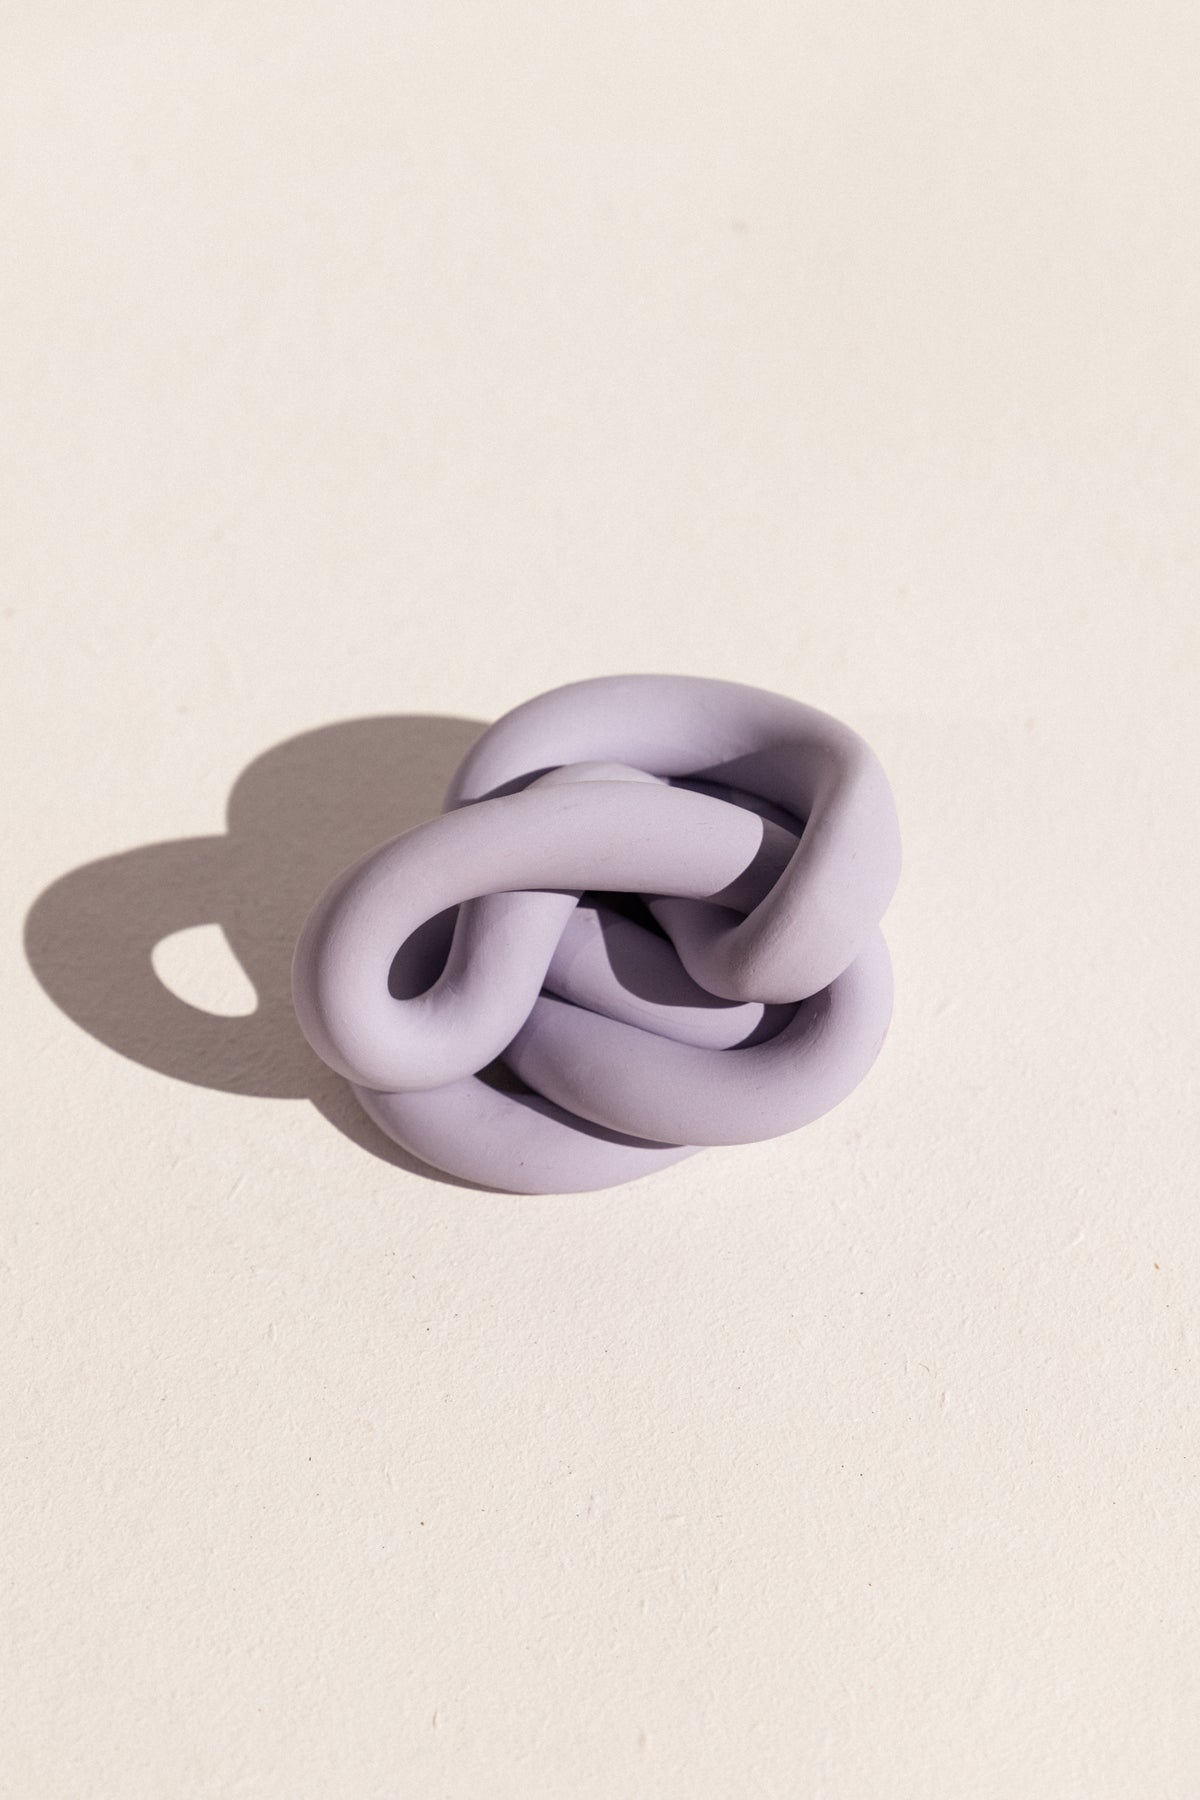 Arowm polymer clay jumbo knot sculptutal ceramic on Makers' Mrkt Makers Market Melbourne